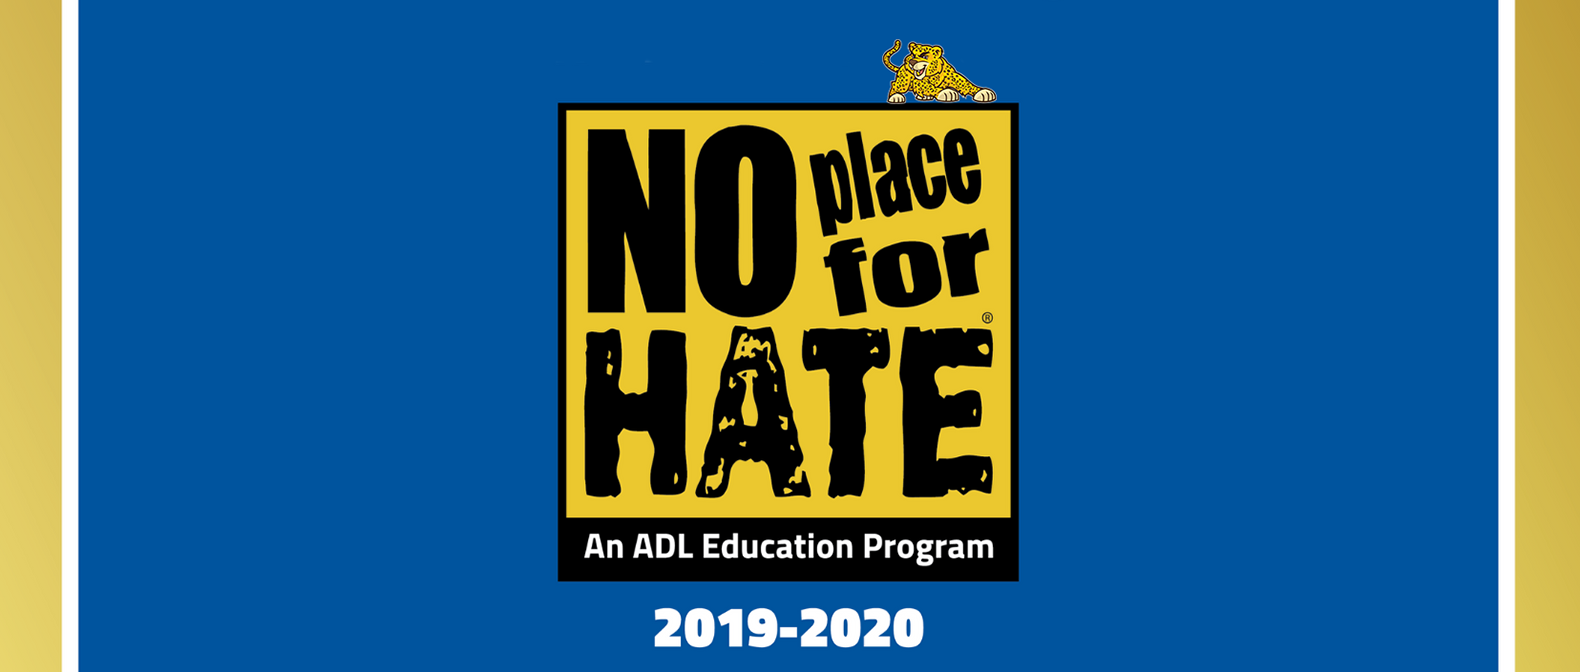 No Place for Hate: PLES